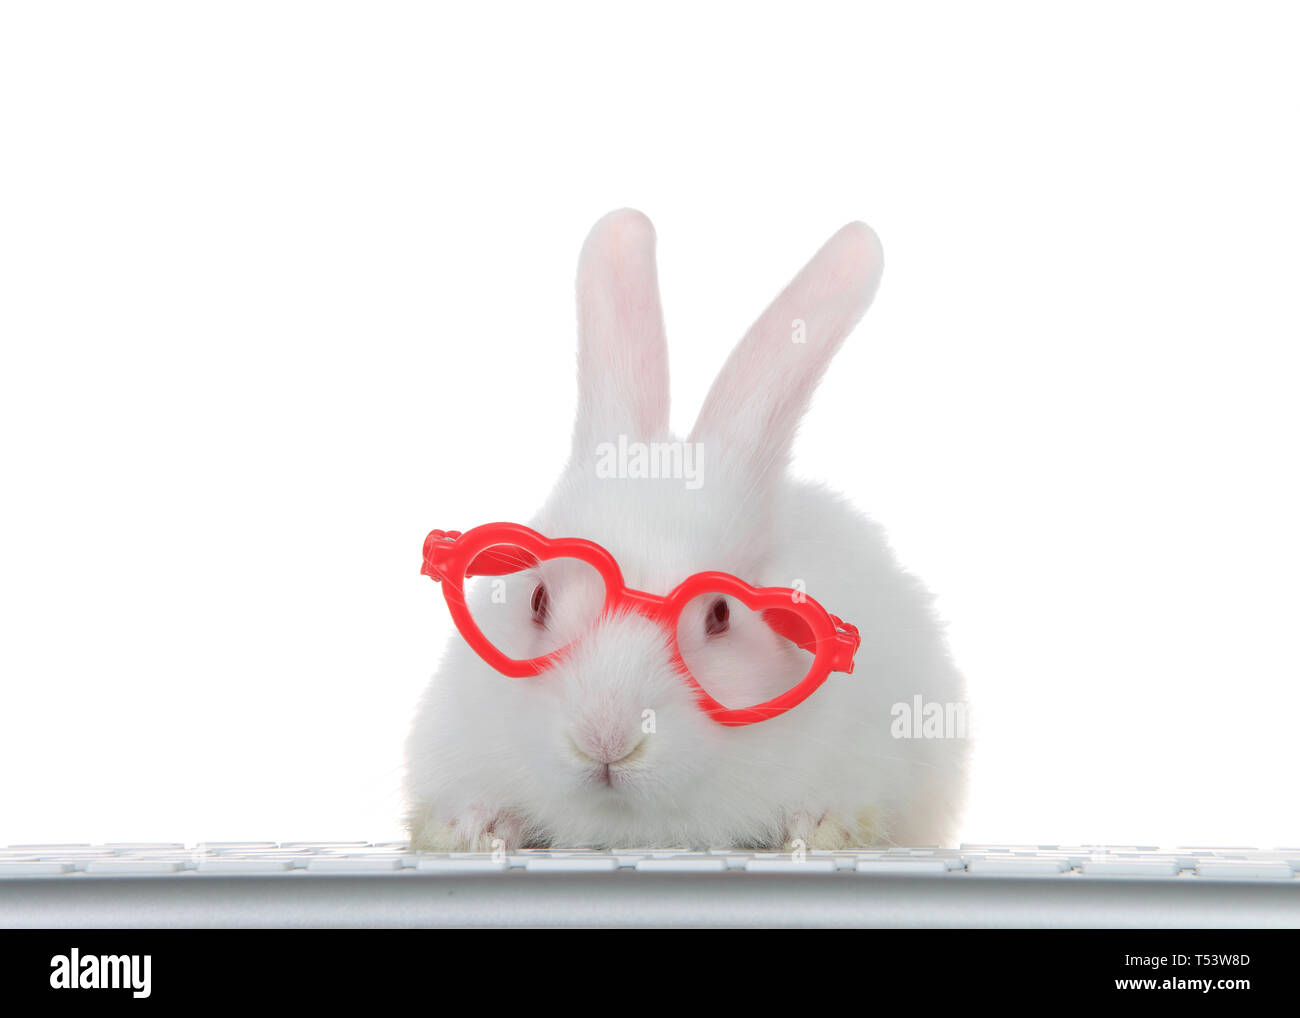 Portrait of an adorable white albino baby bunny rabbit wearing heart shaped pink glasses, paws on computer keyboard looking directly at viewer as if l - Stock Image